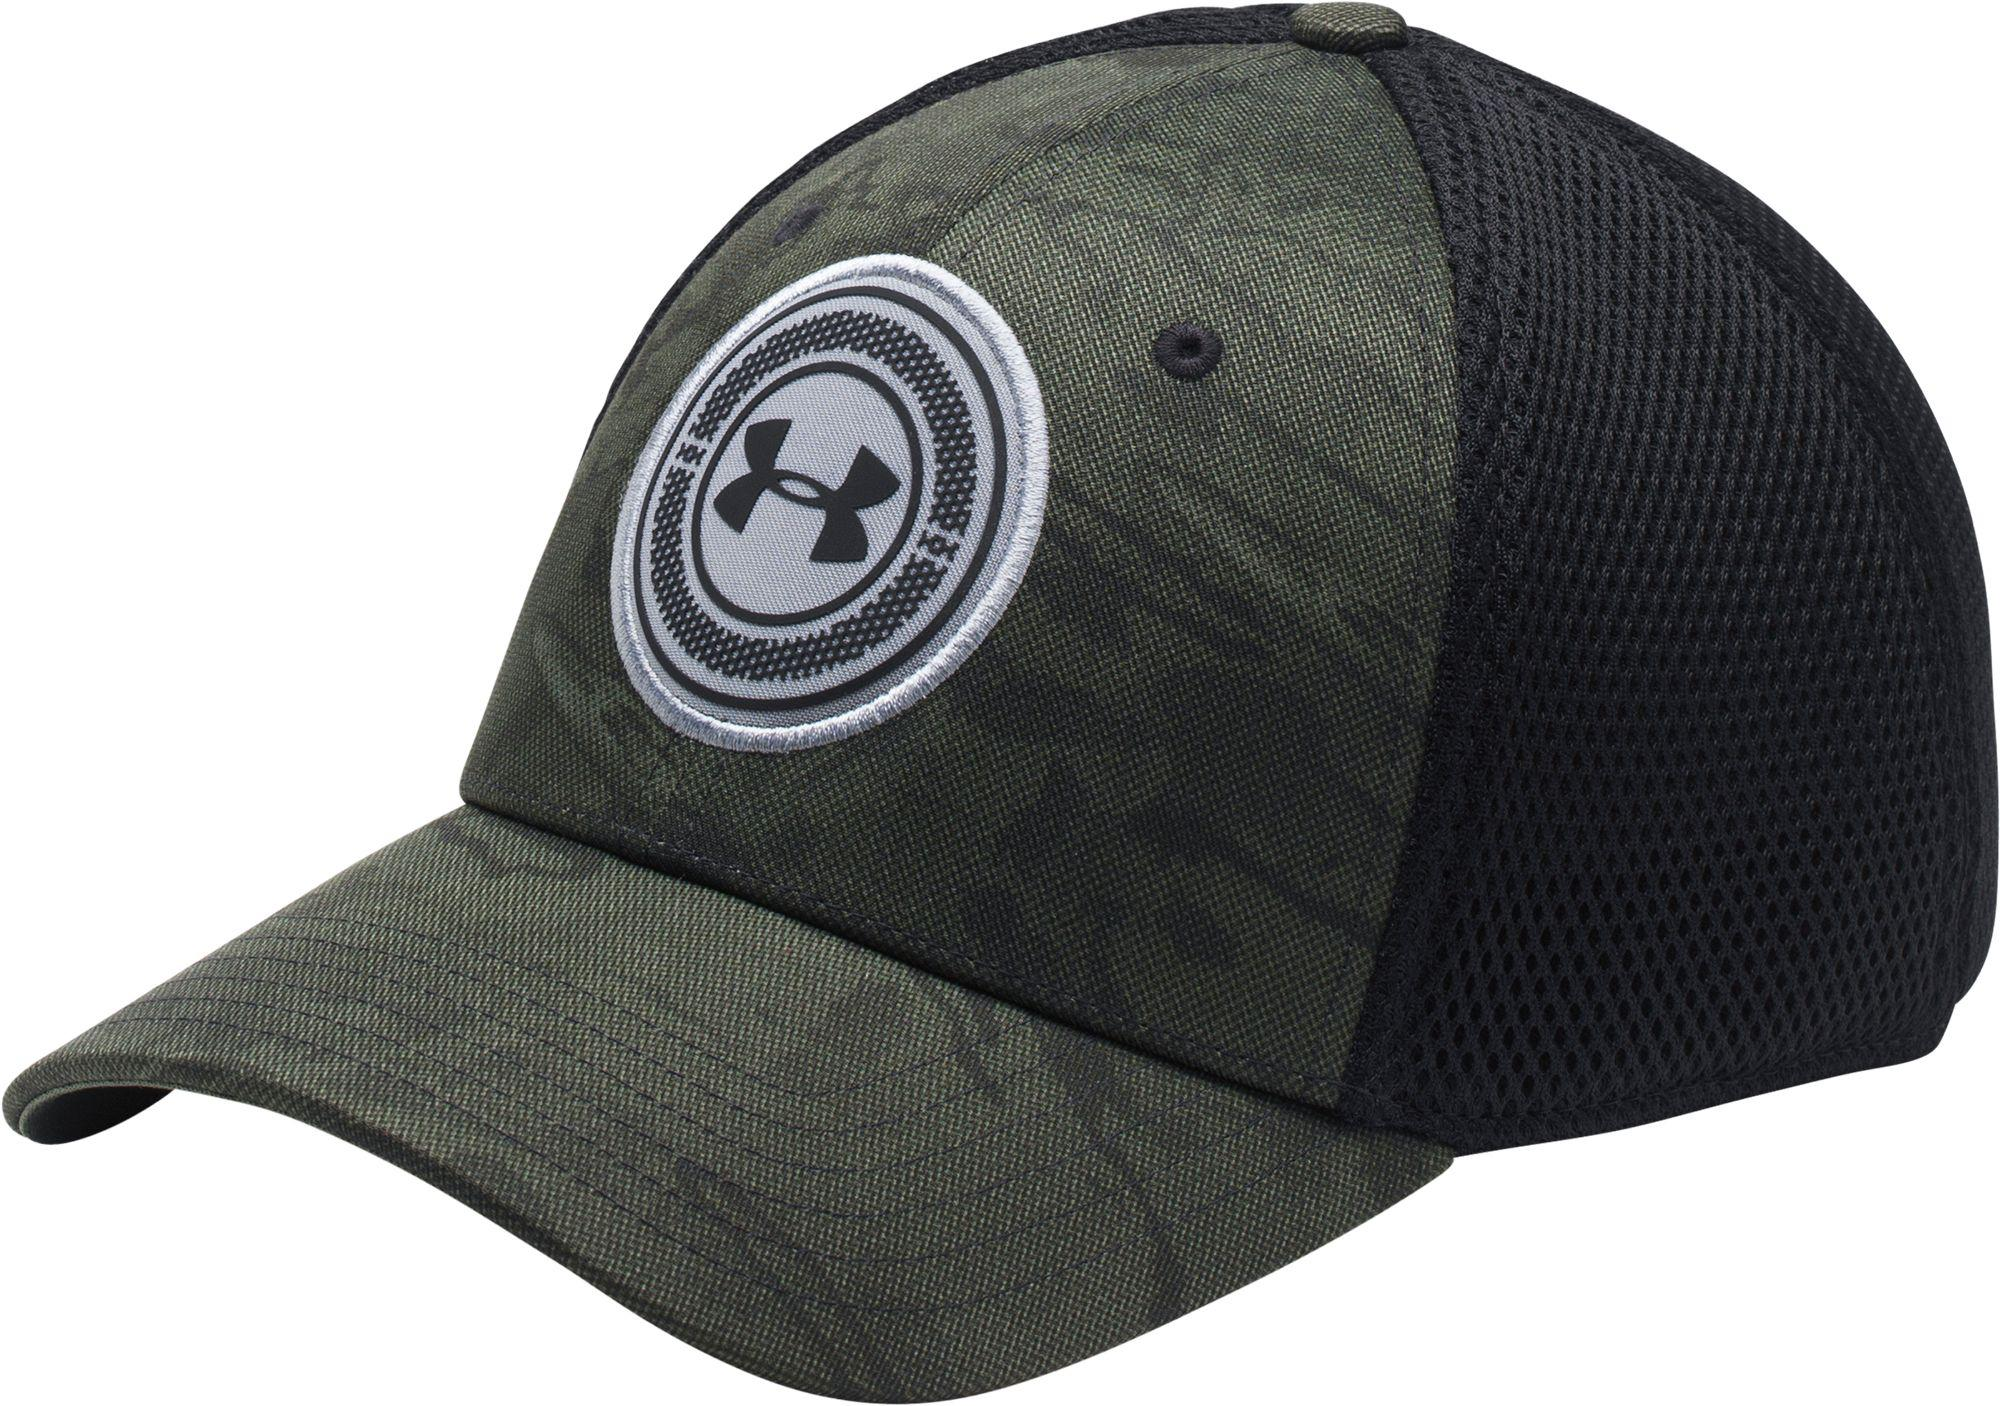 Lyst - Under Armour Men s Ua Golf Eagle 4.0 Cap in Black for Men ... 78f520f98a2f